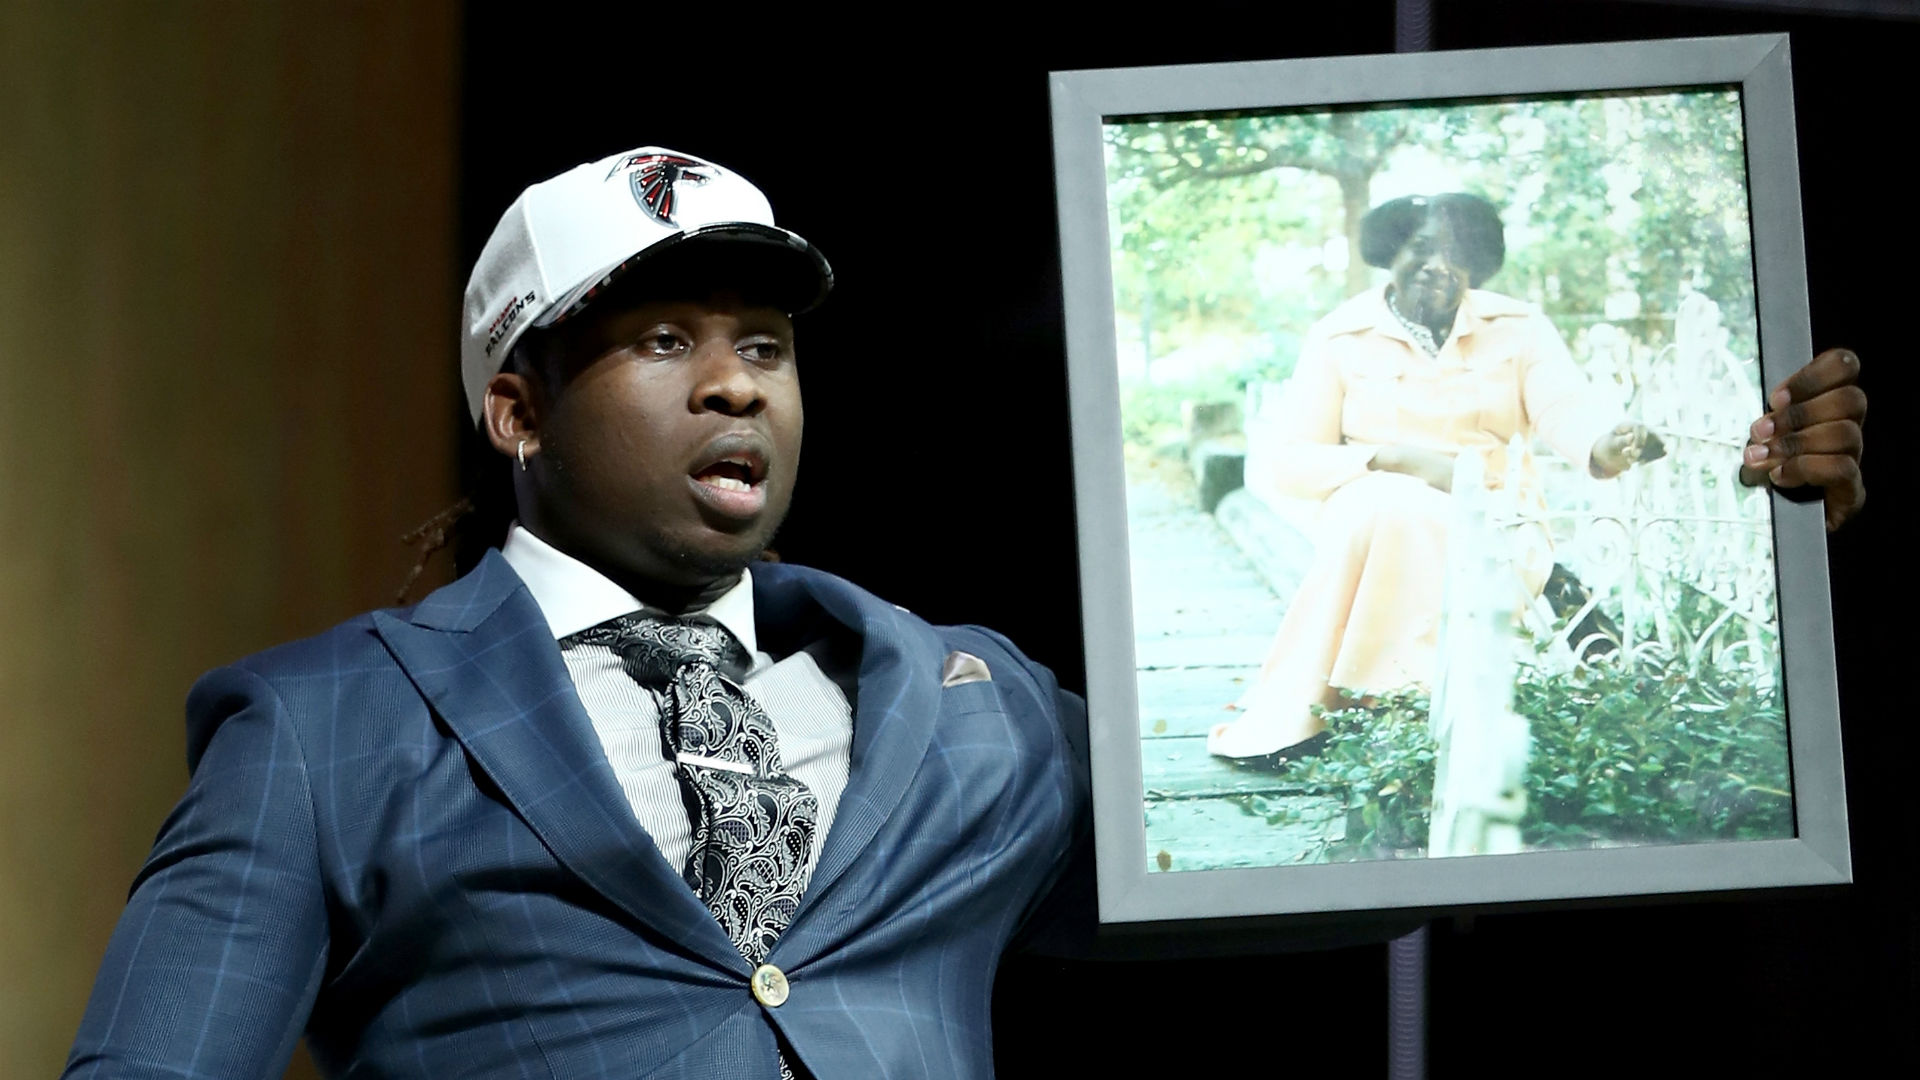 Falcons' Takkarist McKinley is really happy to be a millionaire